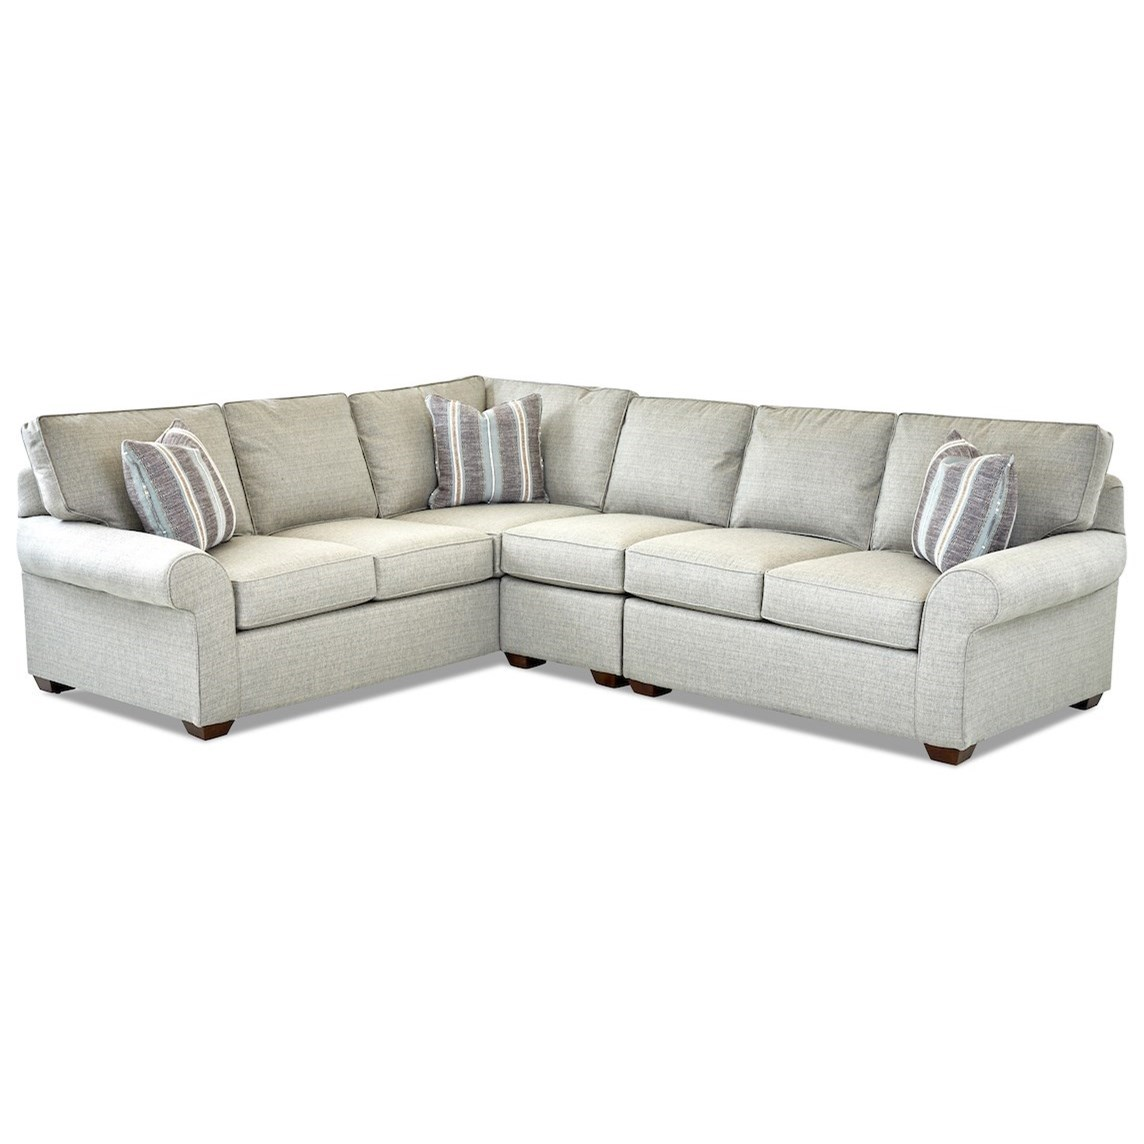 Casual 3 Piece Sectional Sofa with RAF Loveseat